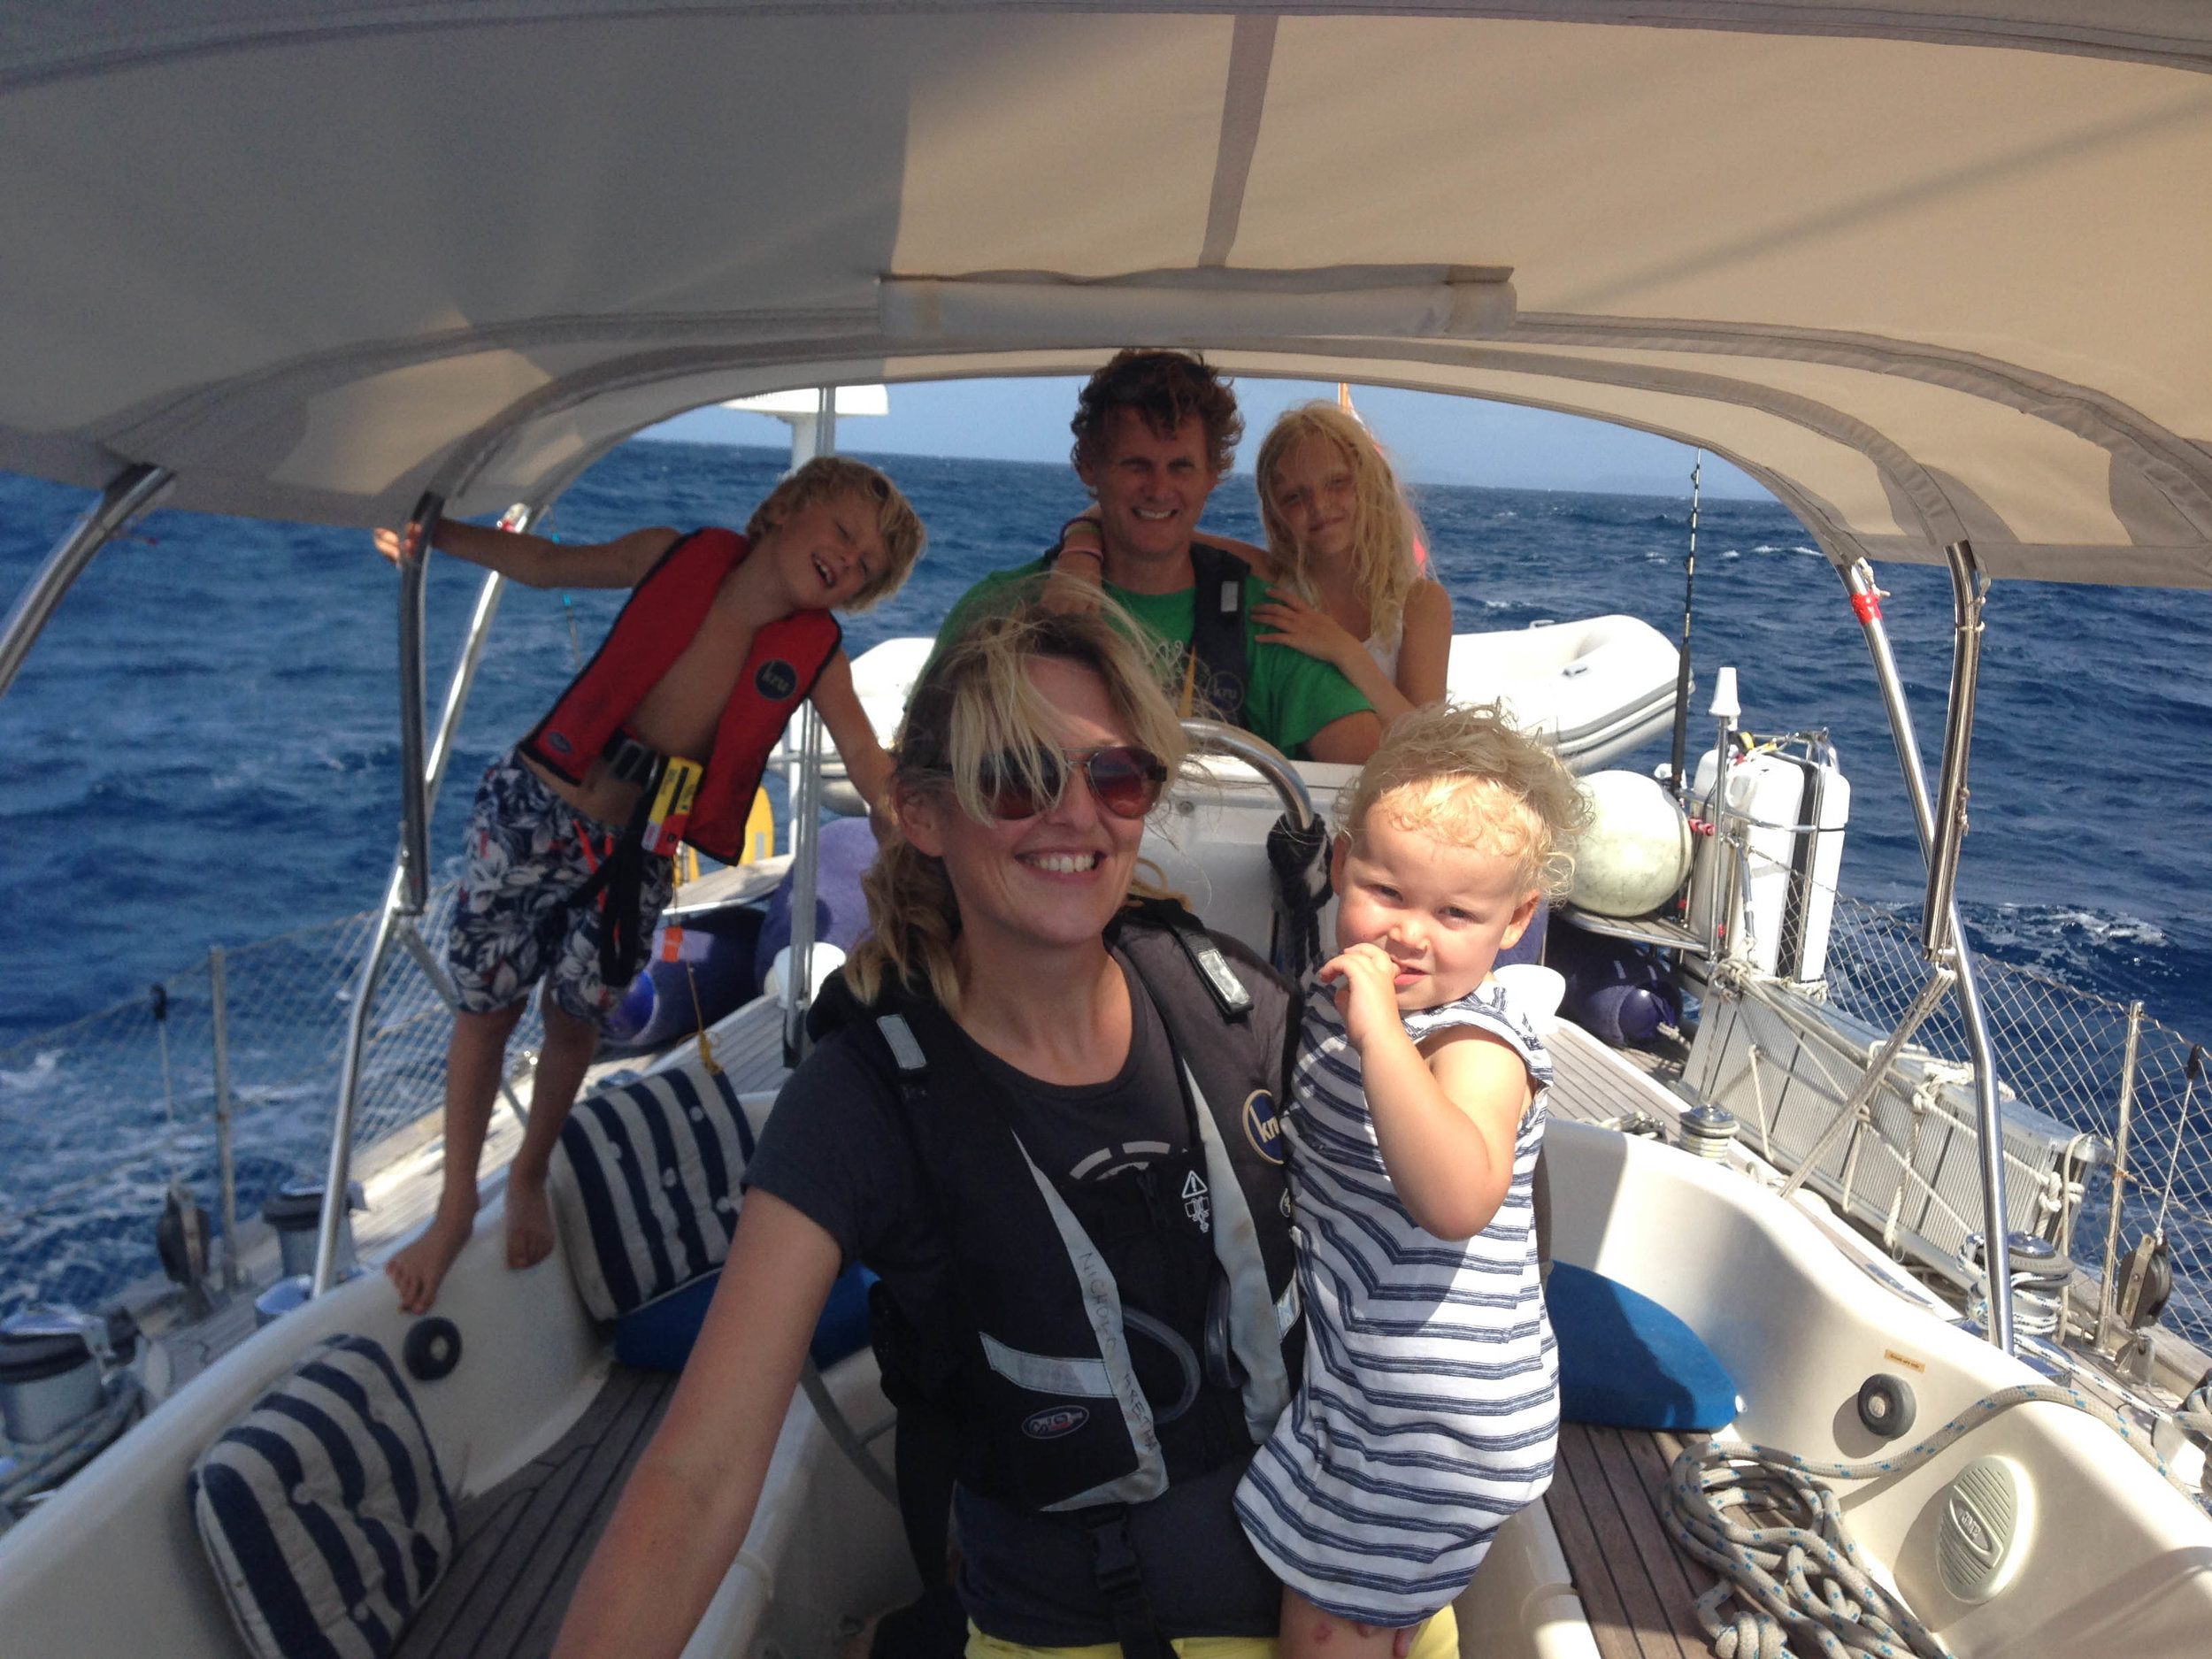 26 - The Craven family arriving in Panama copy.jpg